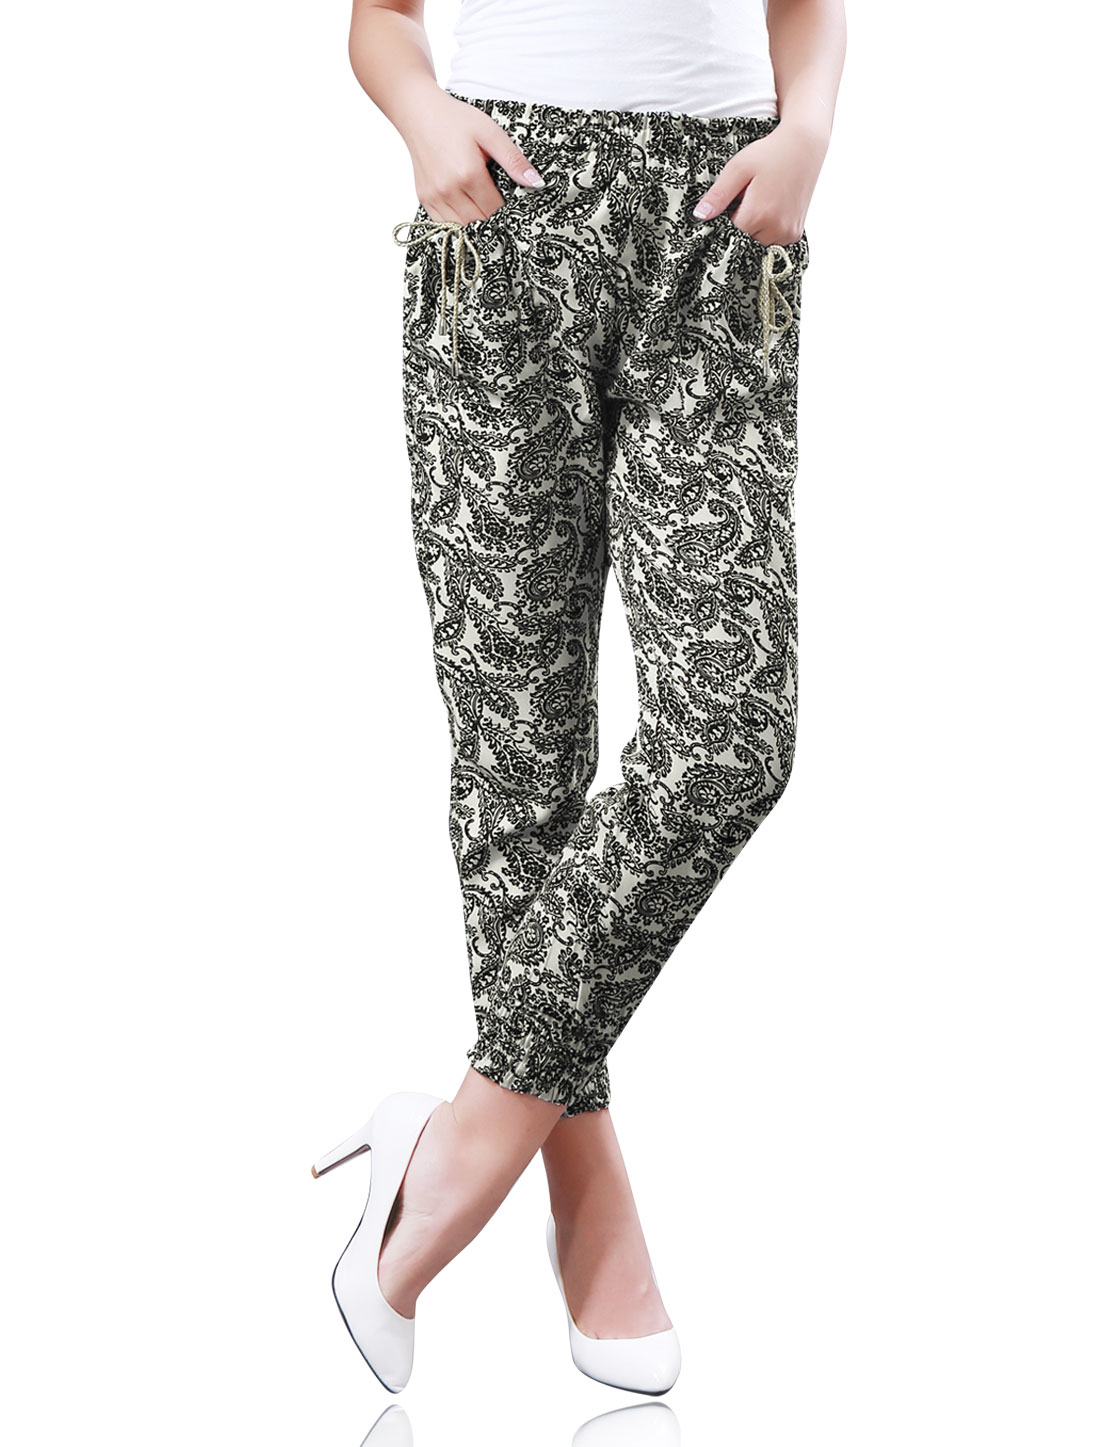 Lady All-over Floral Paisleys Print Tight Cuffs Summer Jogger Pants Black Beige XL